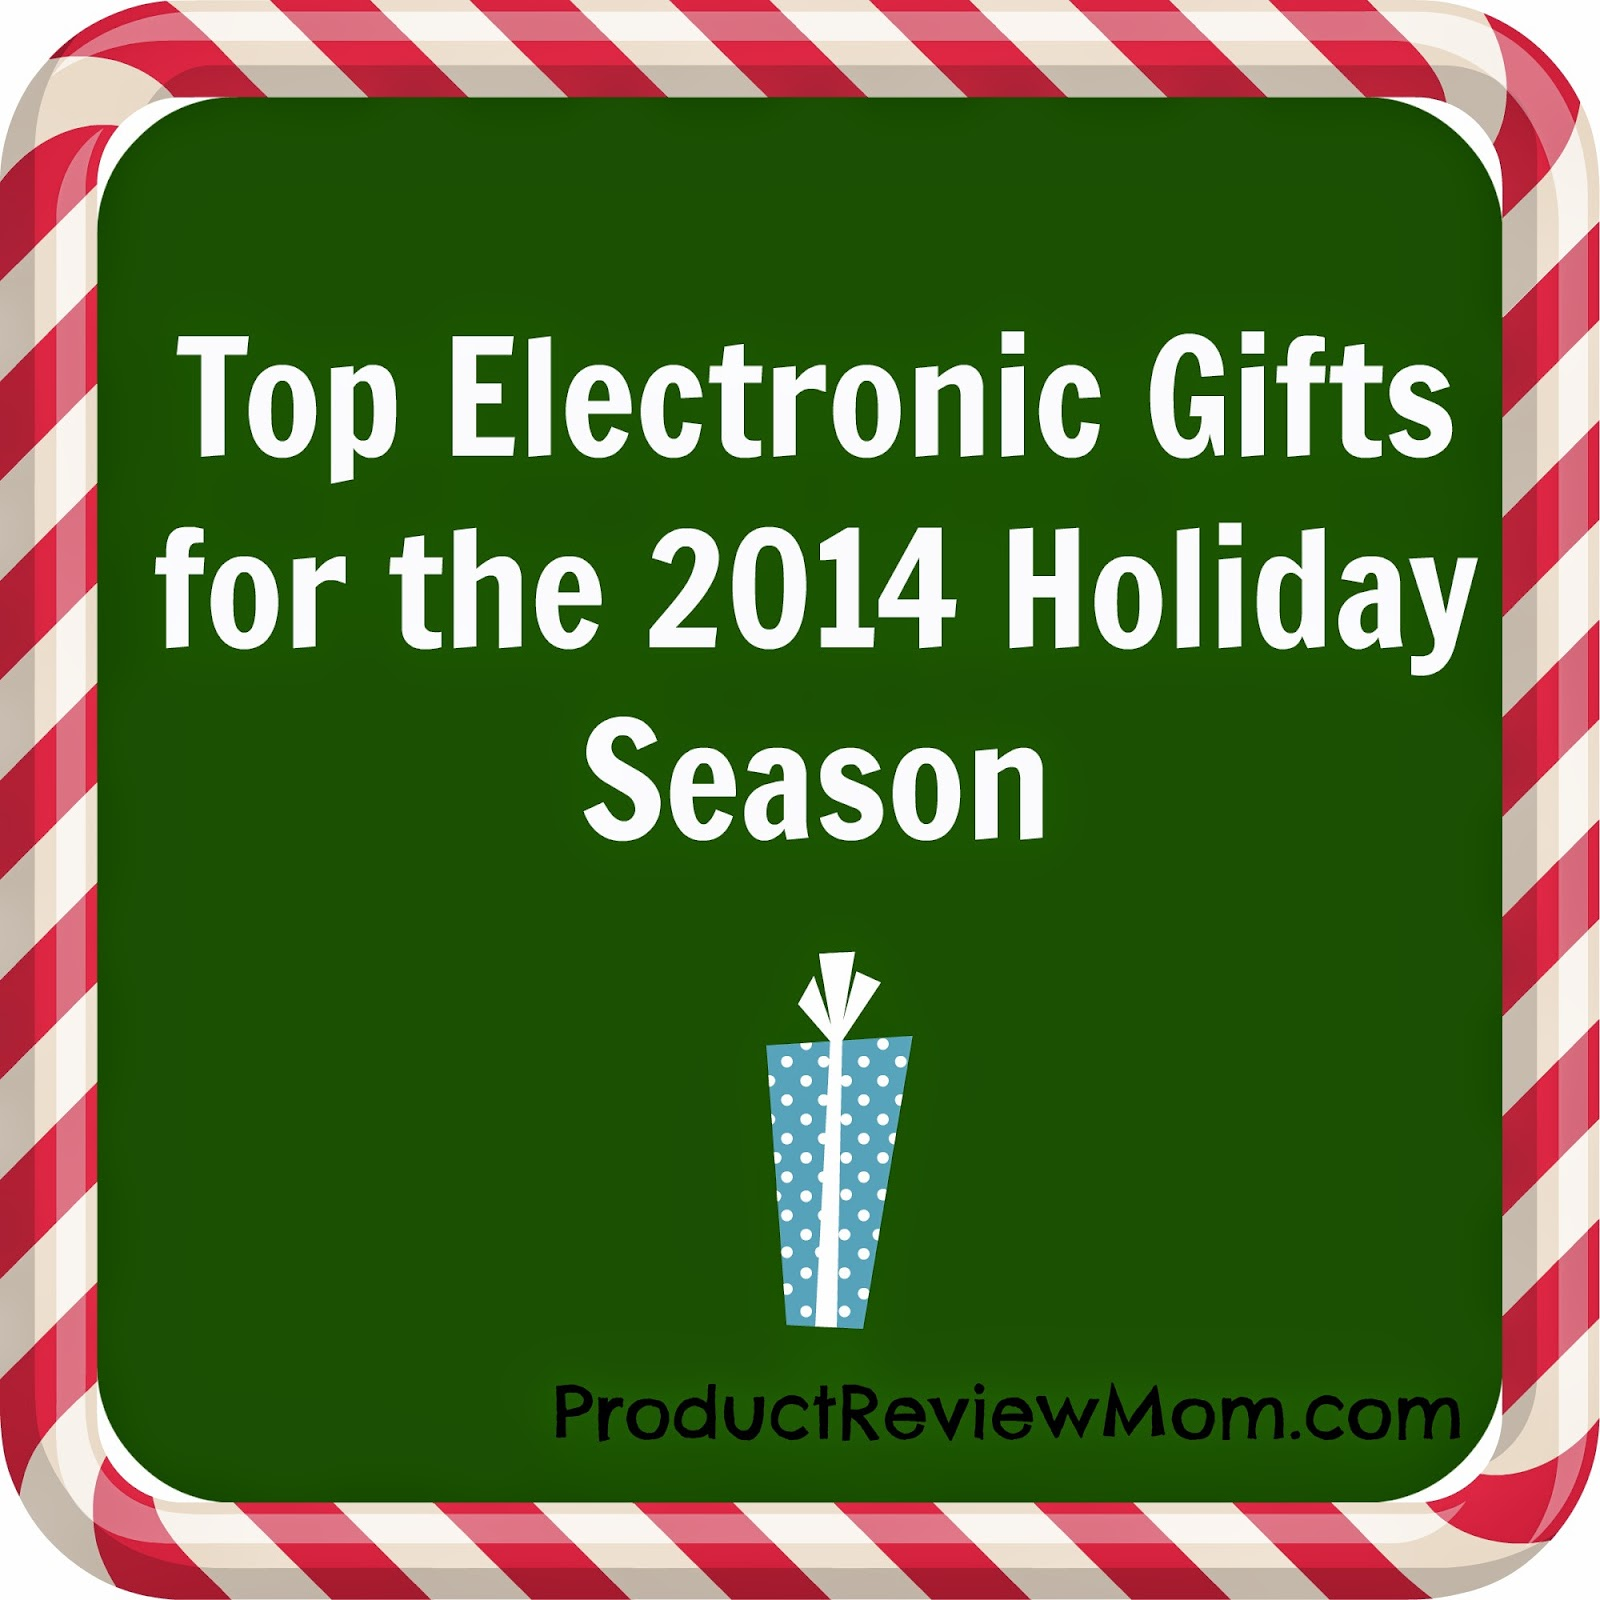 Top Electronic Gifts for the 2014 Holiday Season #HolidayGiftGuide via www.productreviewmom.com